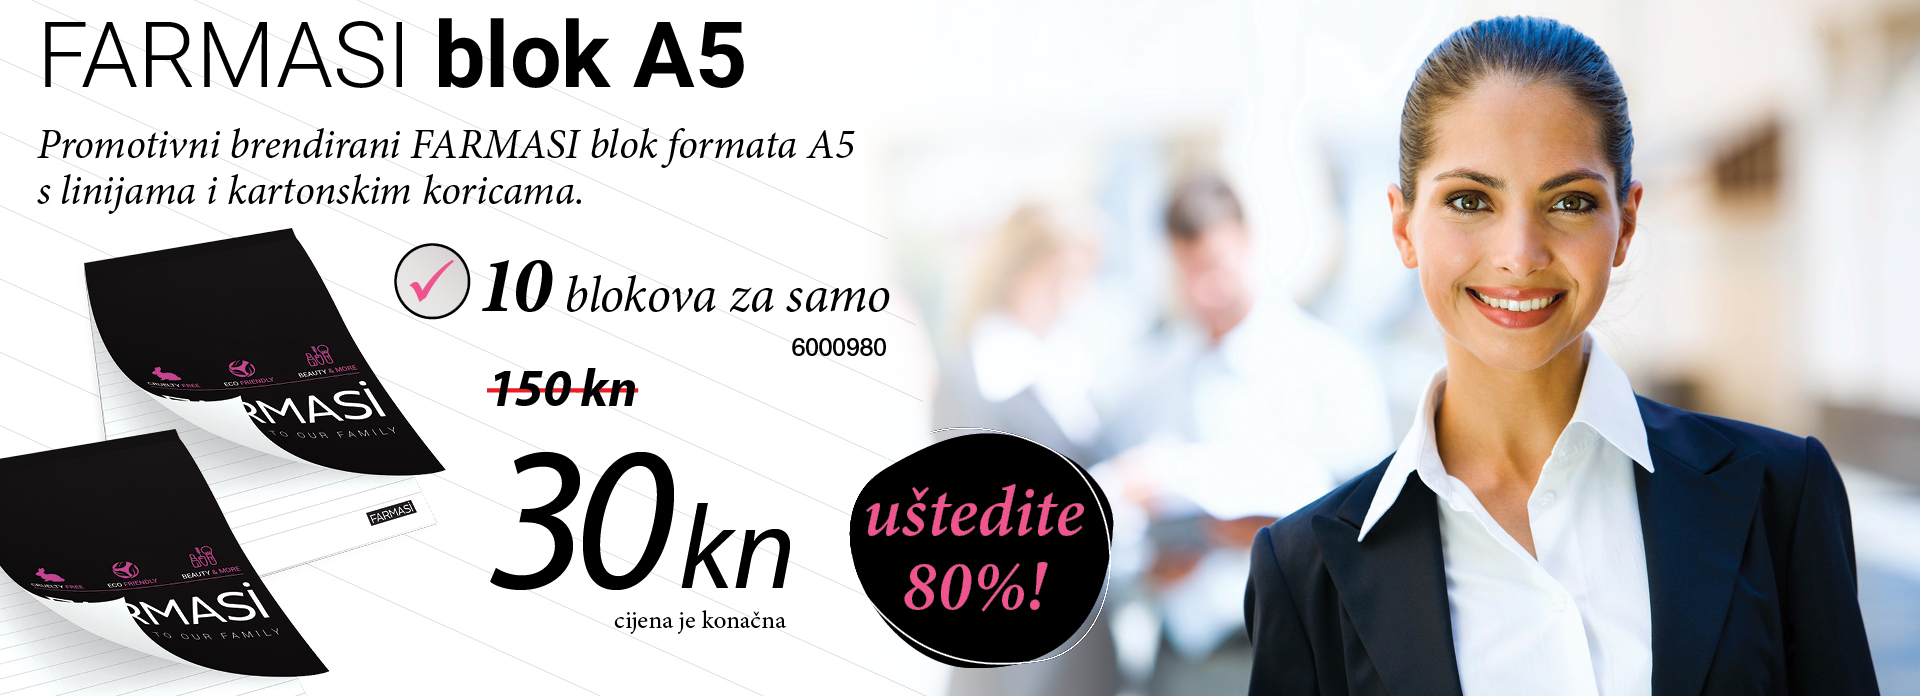 HR BANER BLOKOVI 2110 article